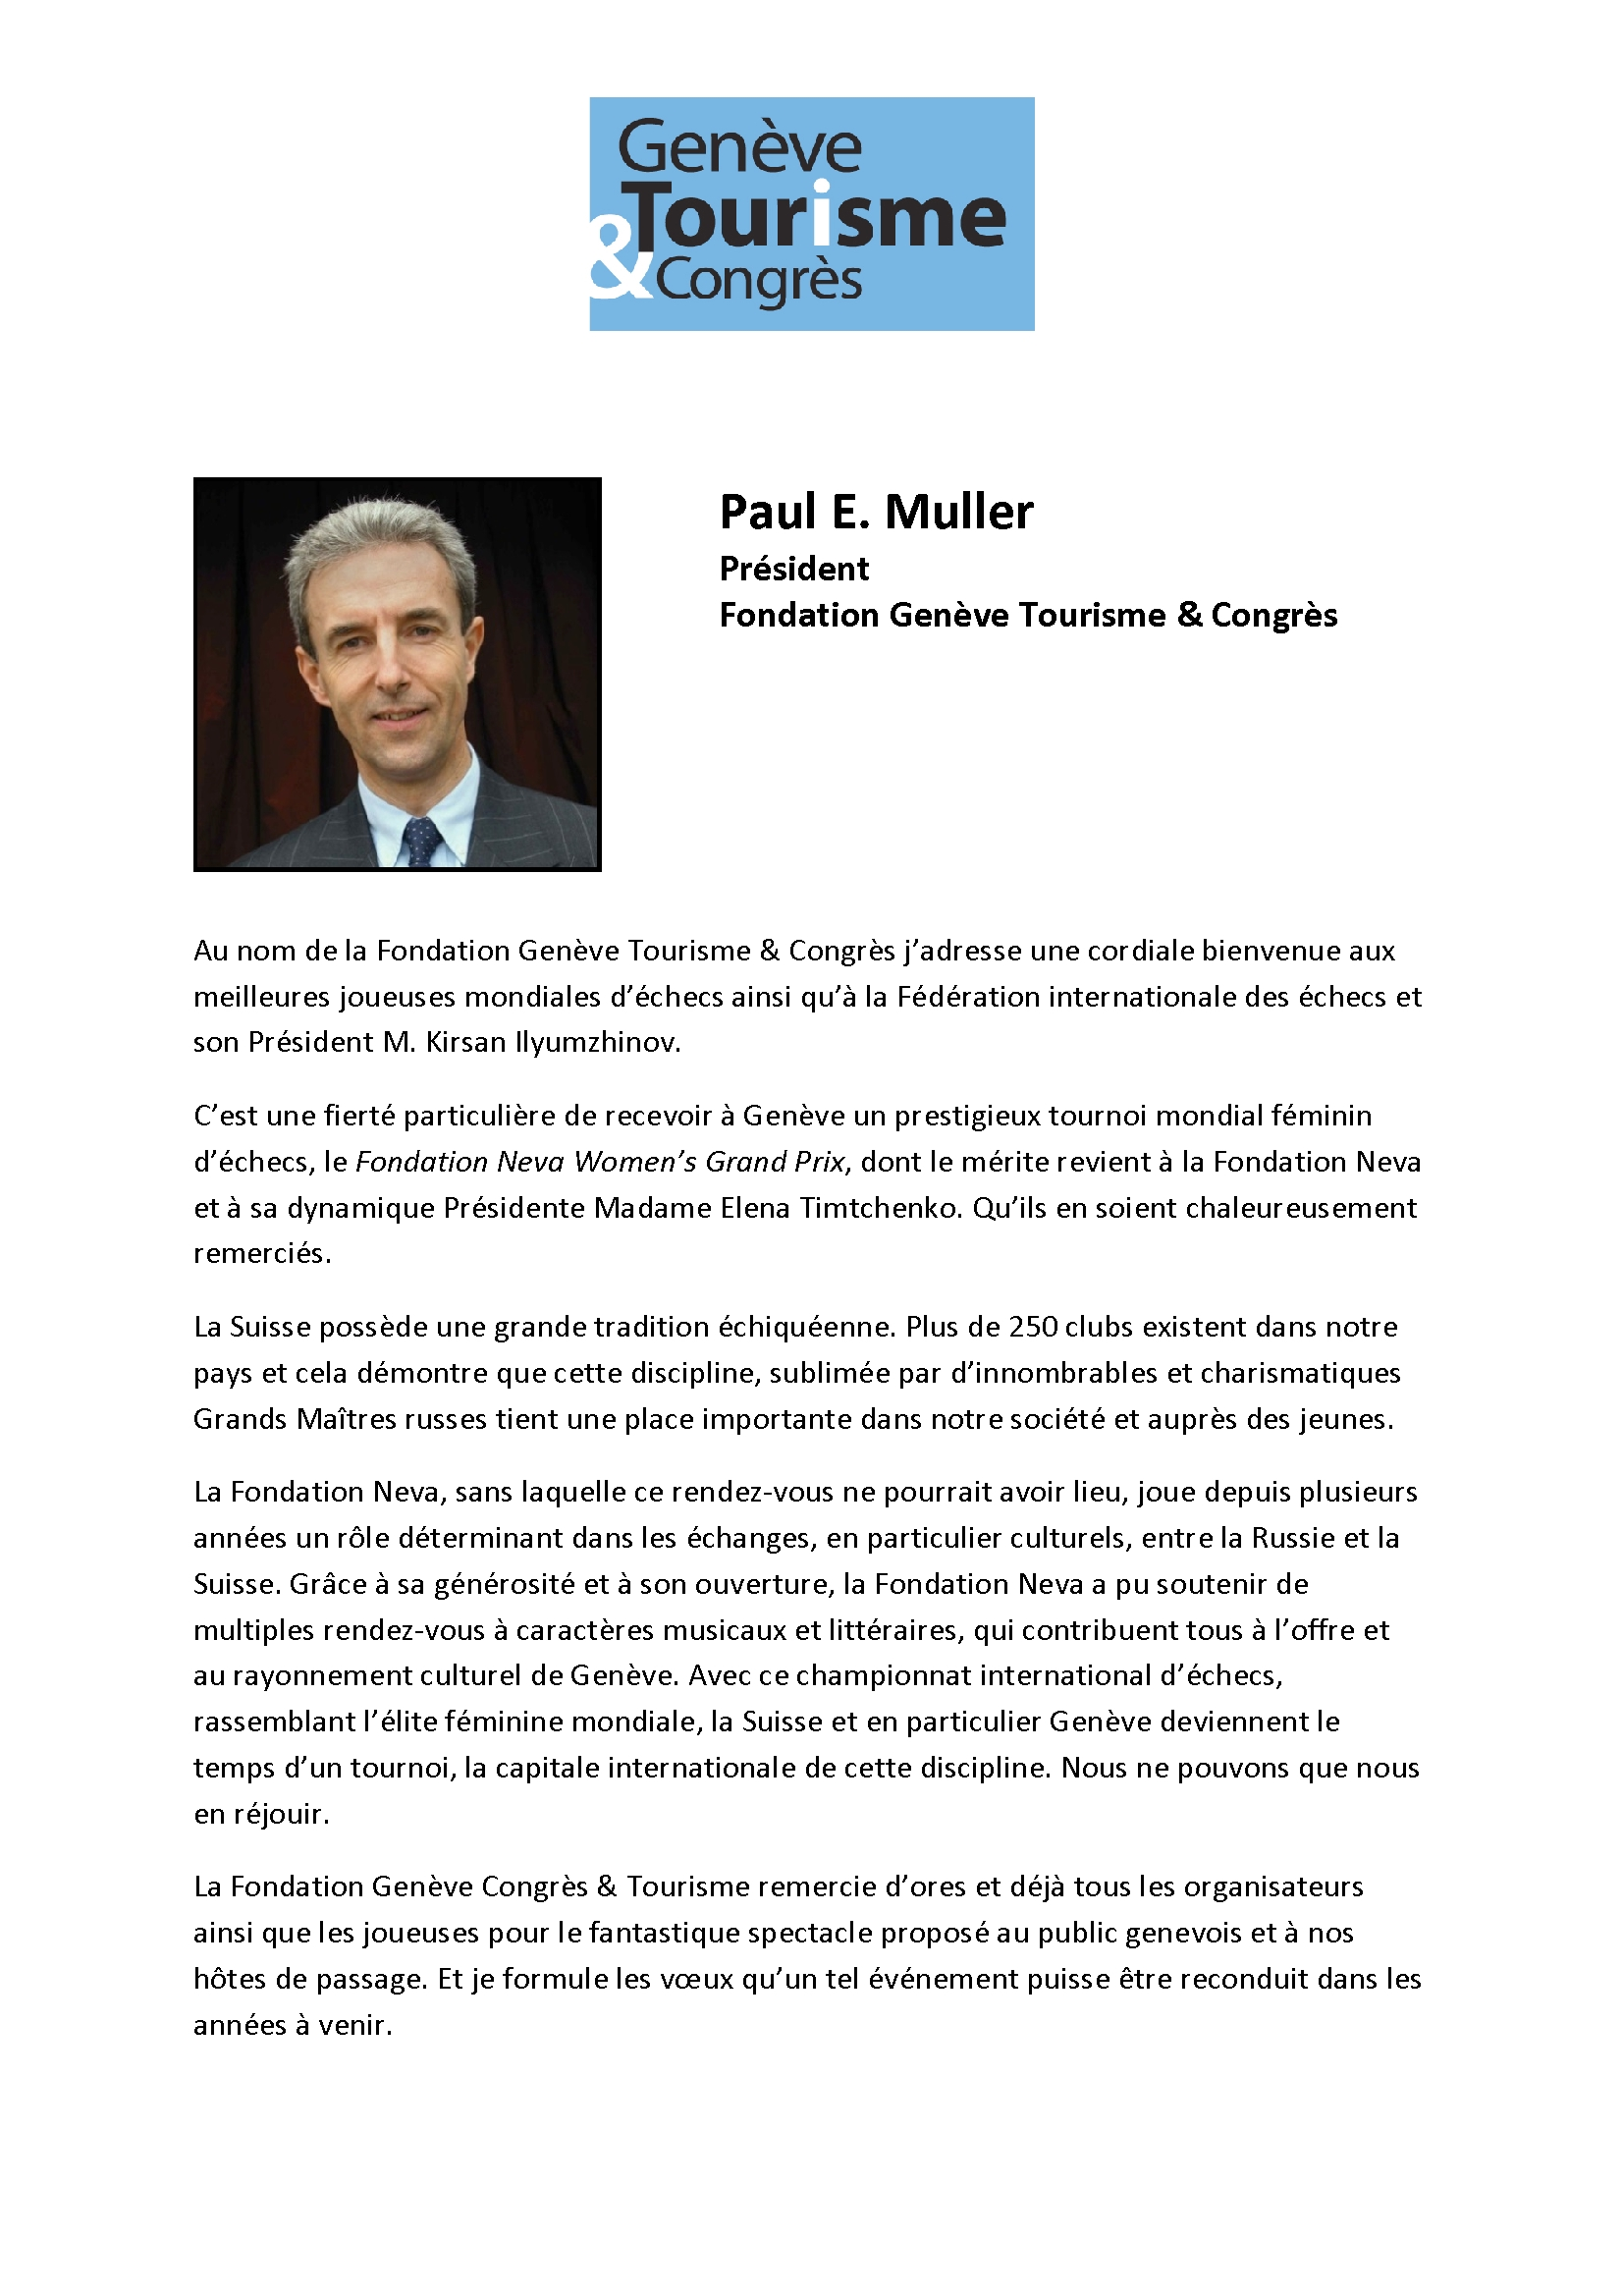 Message de bienvenue de M. Paul E. Muller